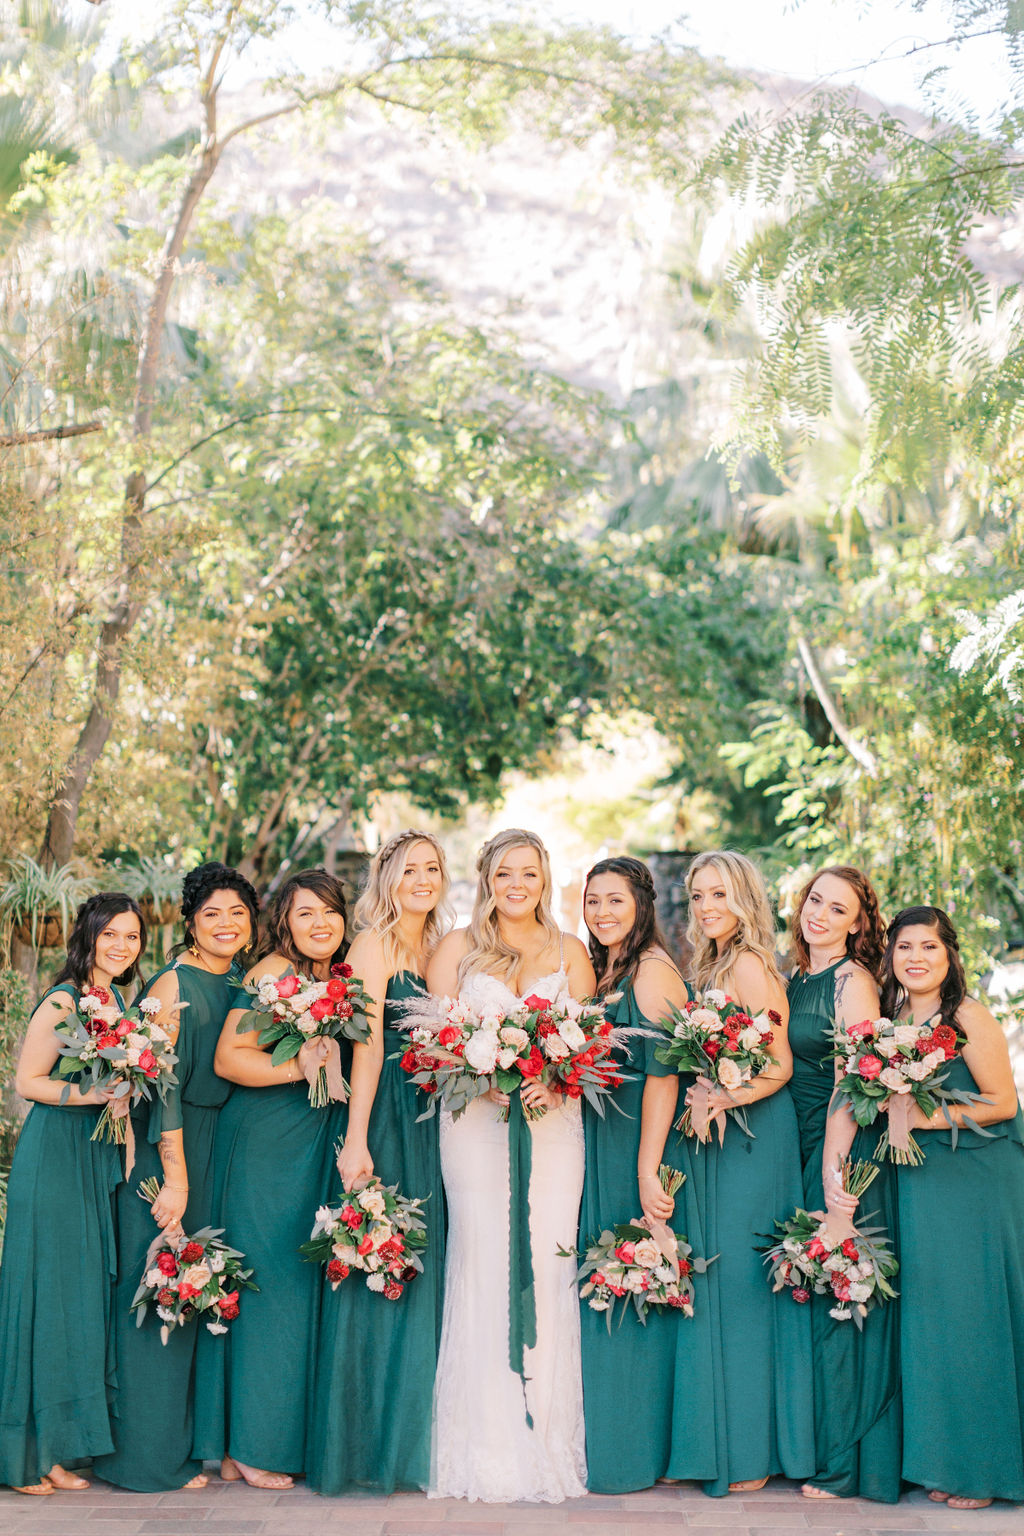 meagan robert wedding bridal party in green